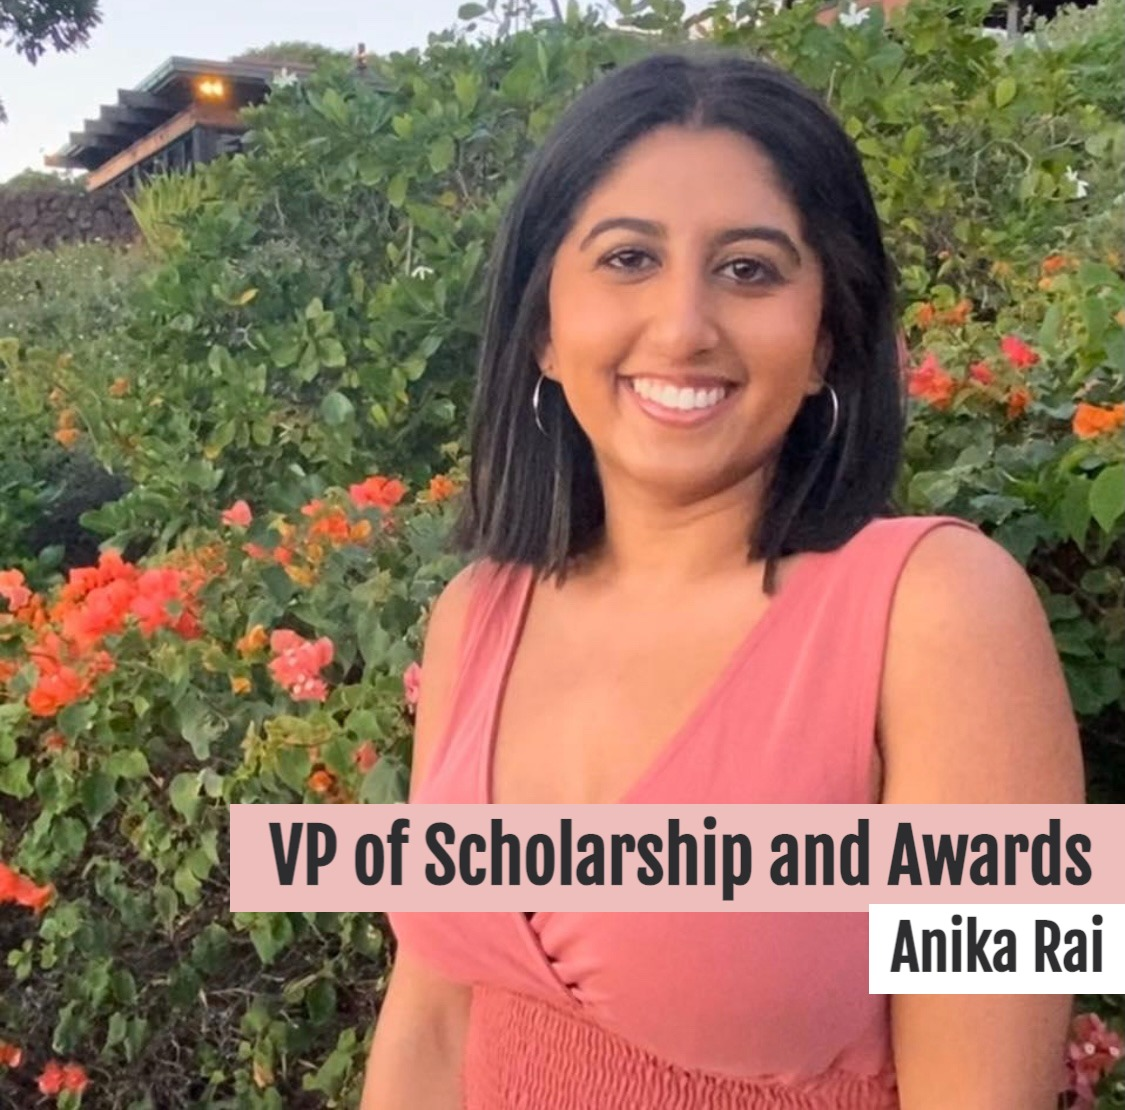 VP of Scholarships and Awards